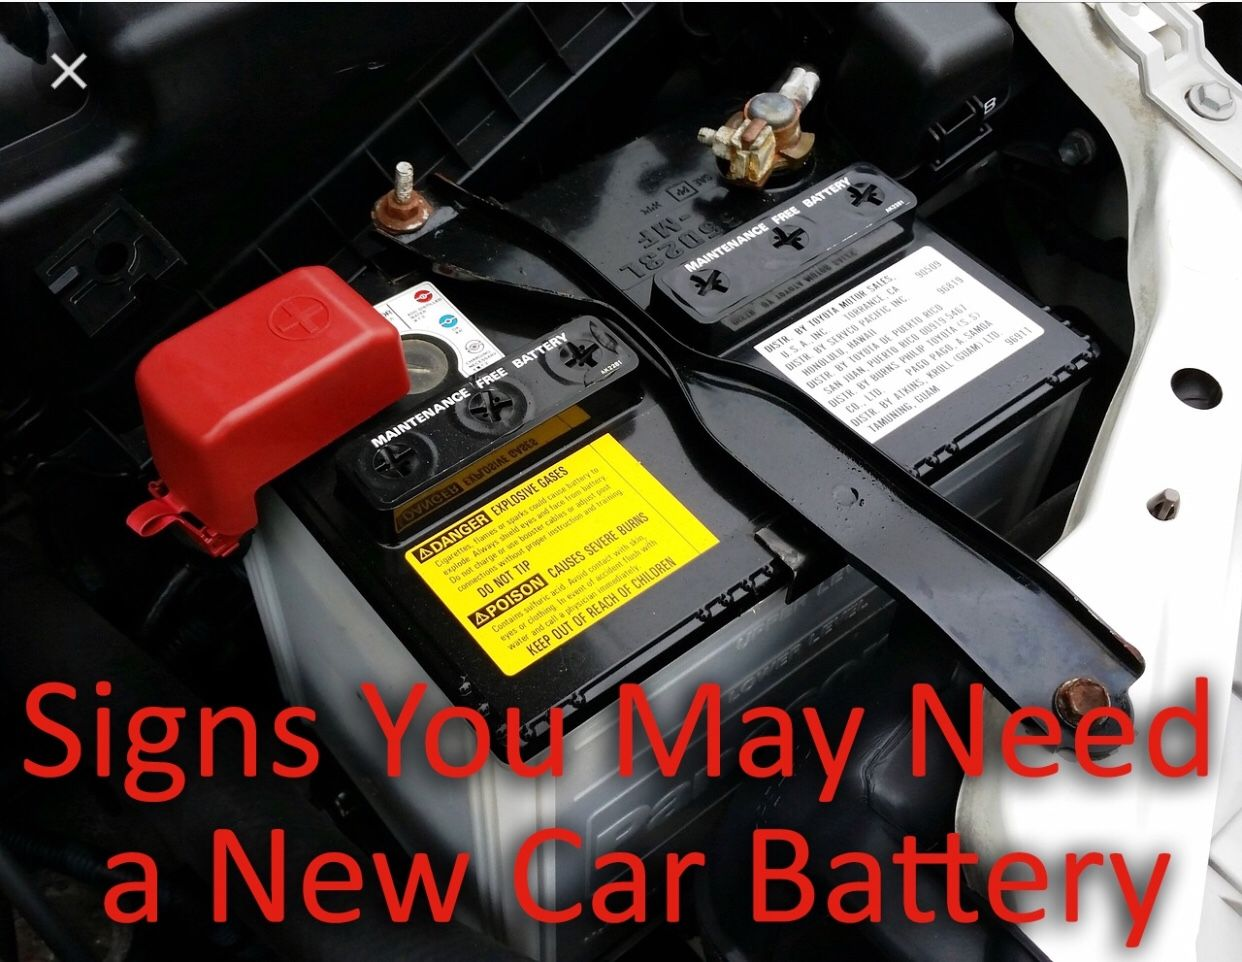 Free Car Battery Installation For The Month Of January If You Buy A New Car Battery From Us We Will Install It For Free 4m New Cars Free Cars Car Battery